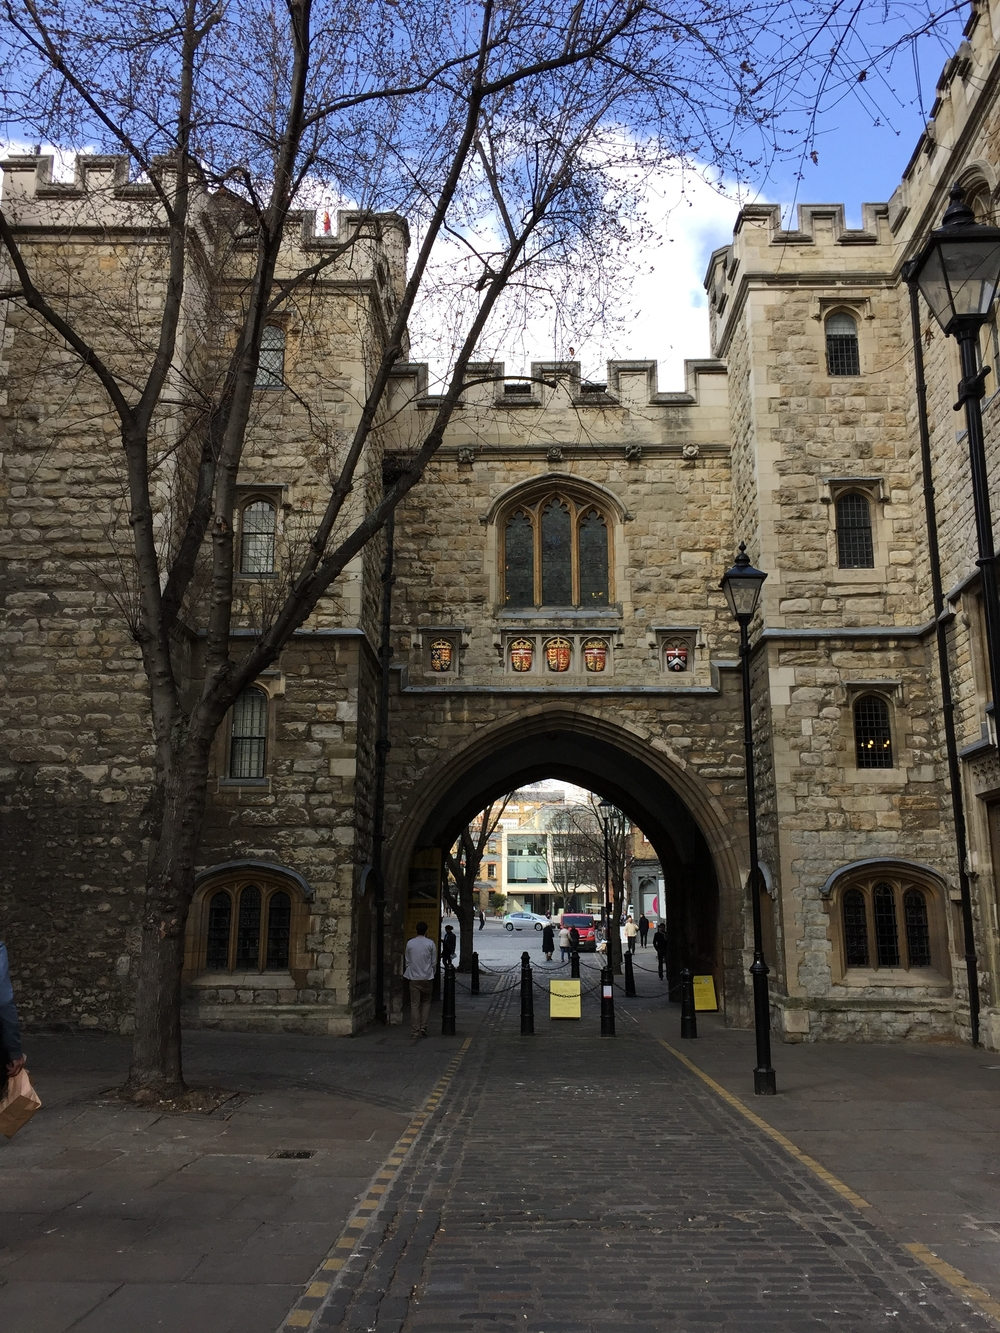 SAINT-JOHN'S-GATE-CLERKENWELL-THE-GREAT-WORK-jessewaugh.com-5.jpg